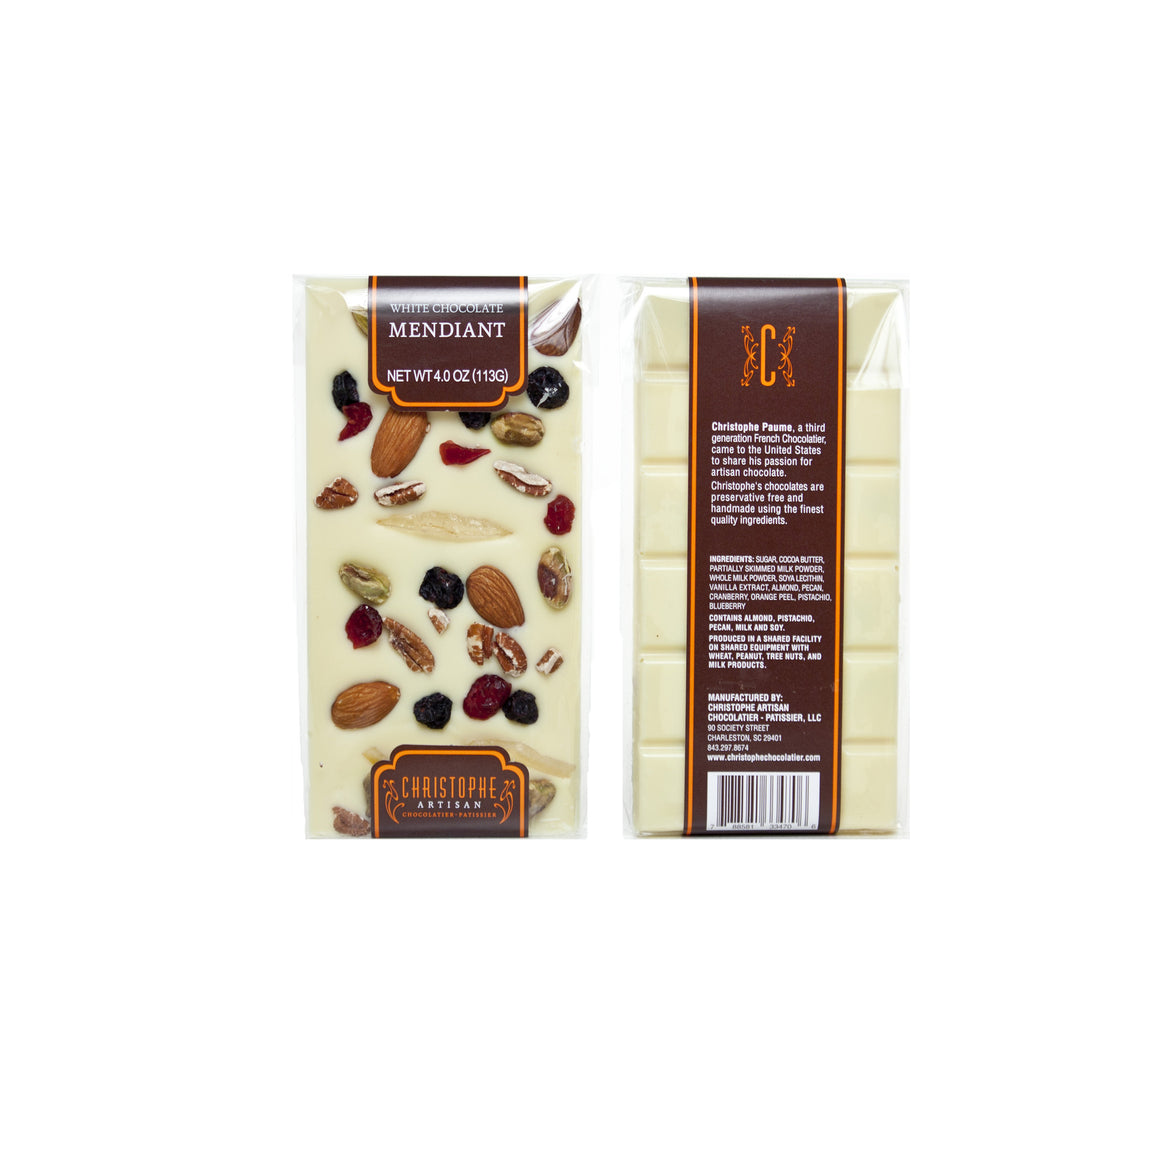 White Chocolate Mendiant Bar